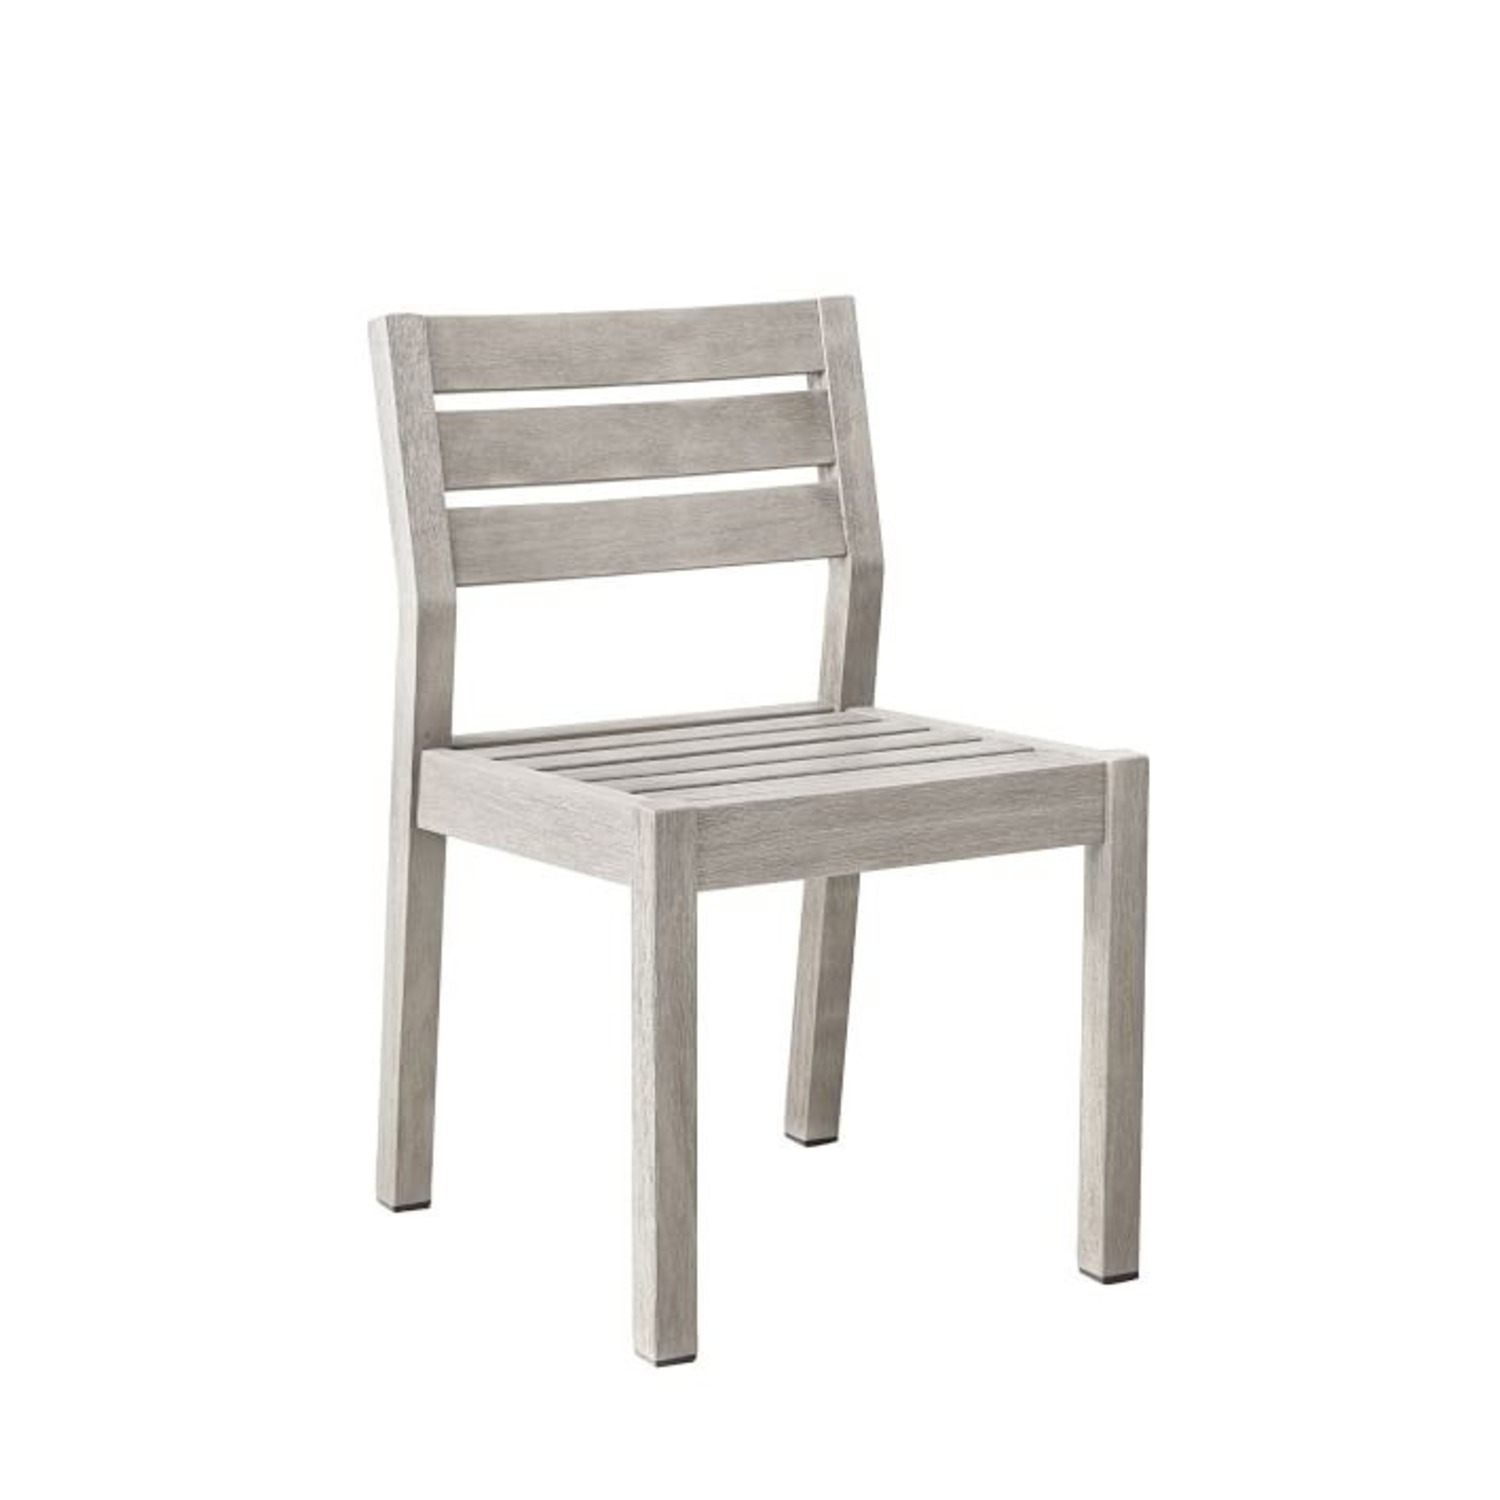 West Elm Portside Dining Chair - image-2